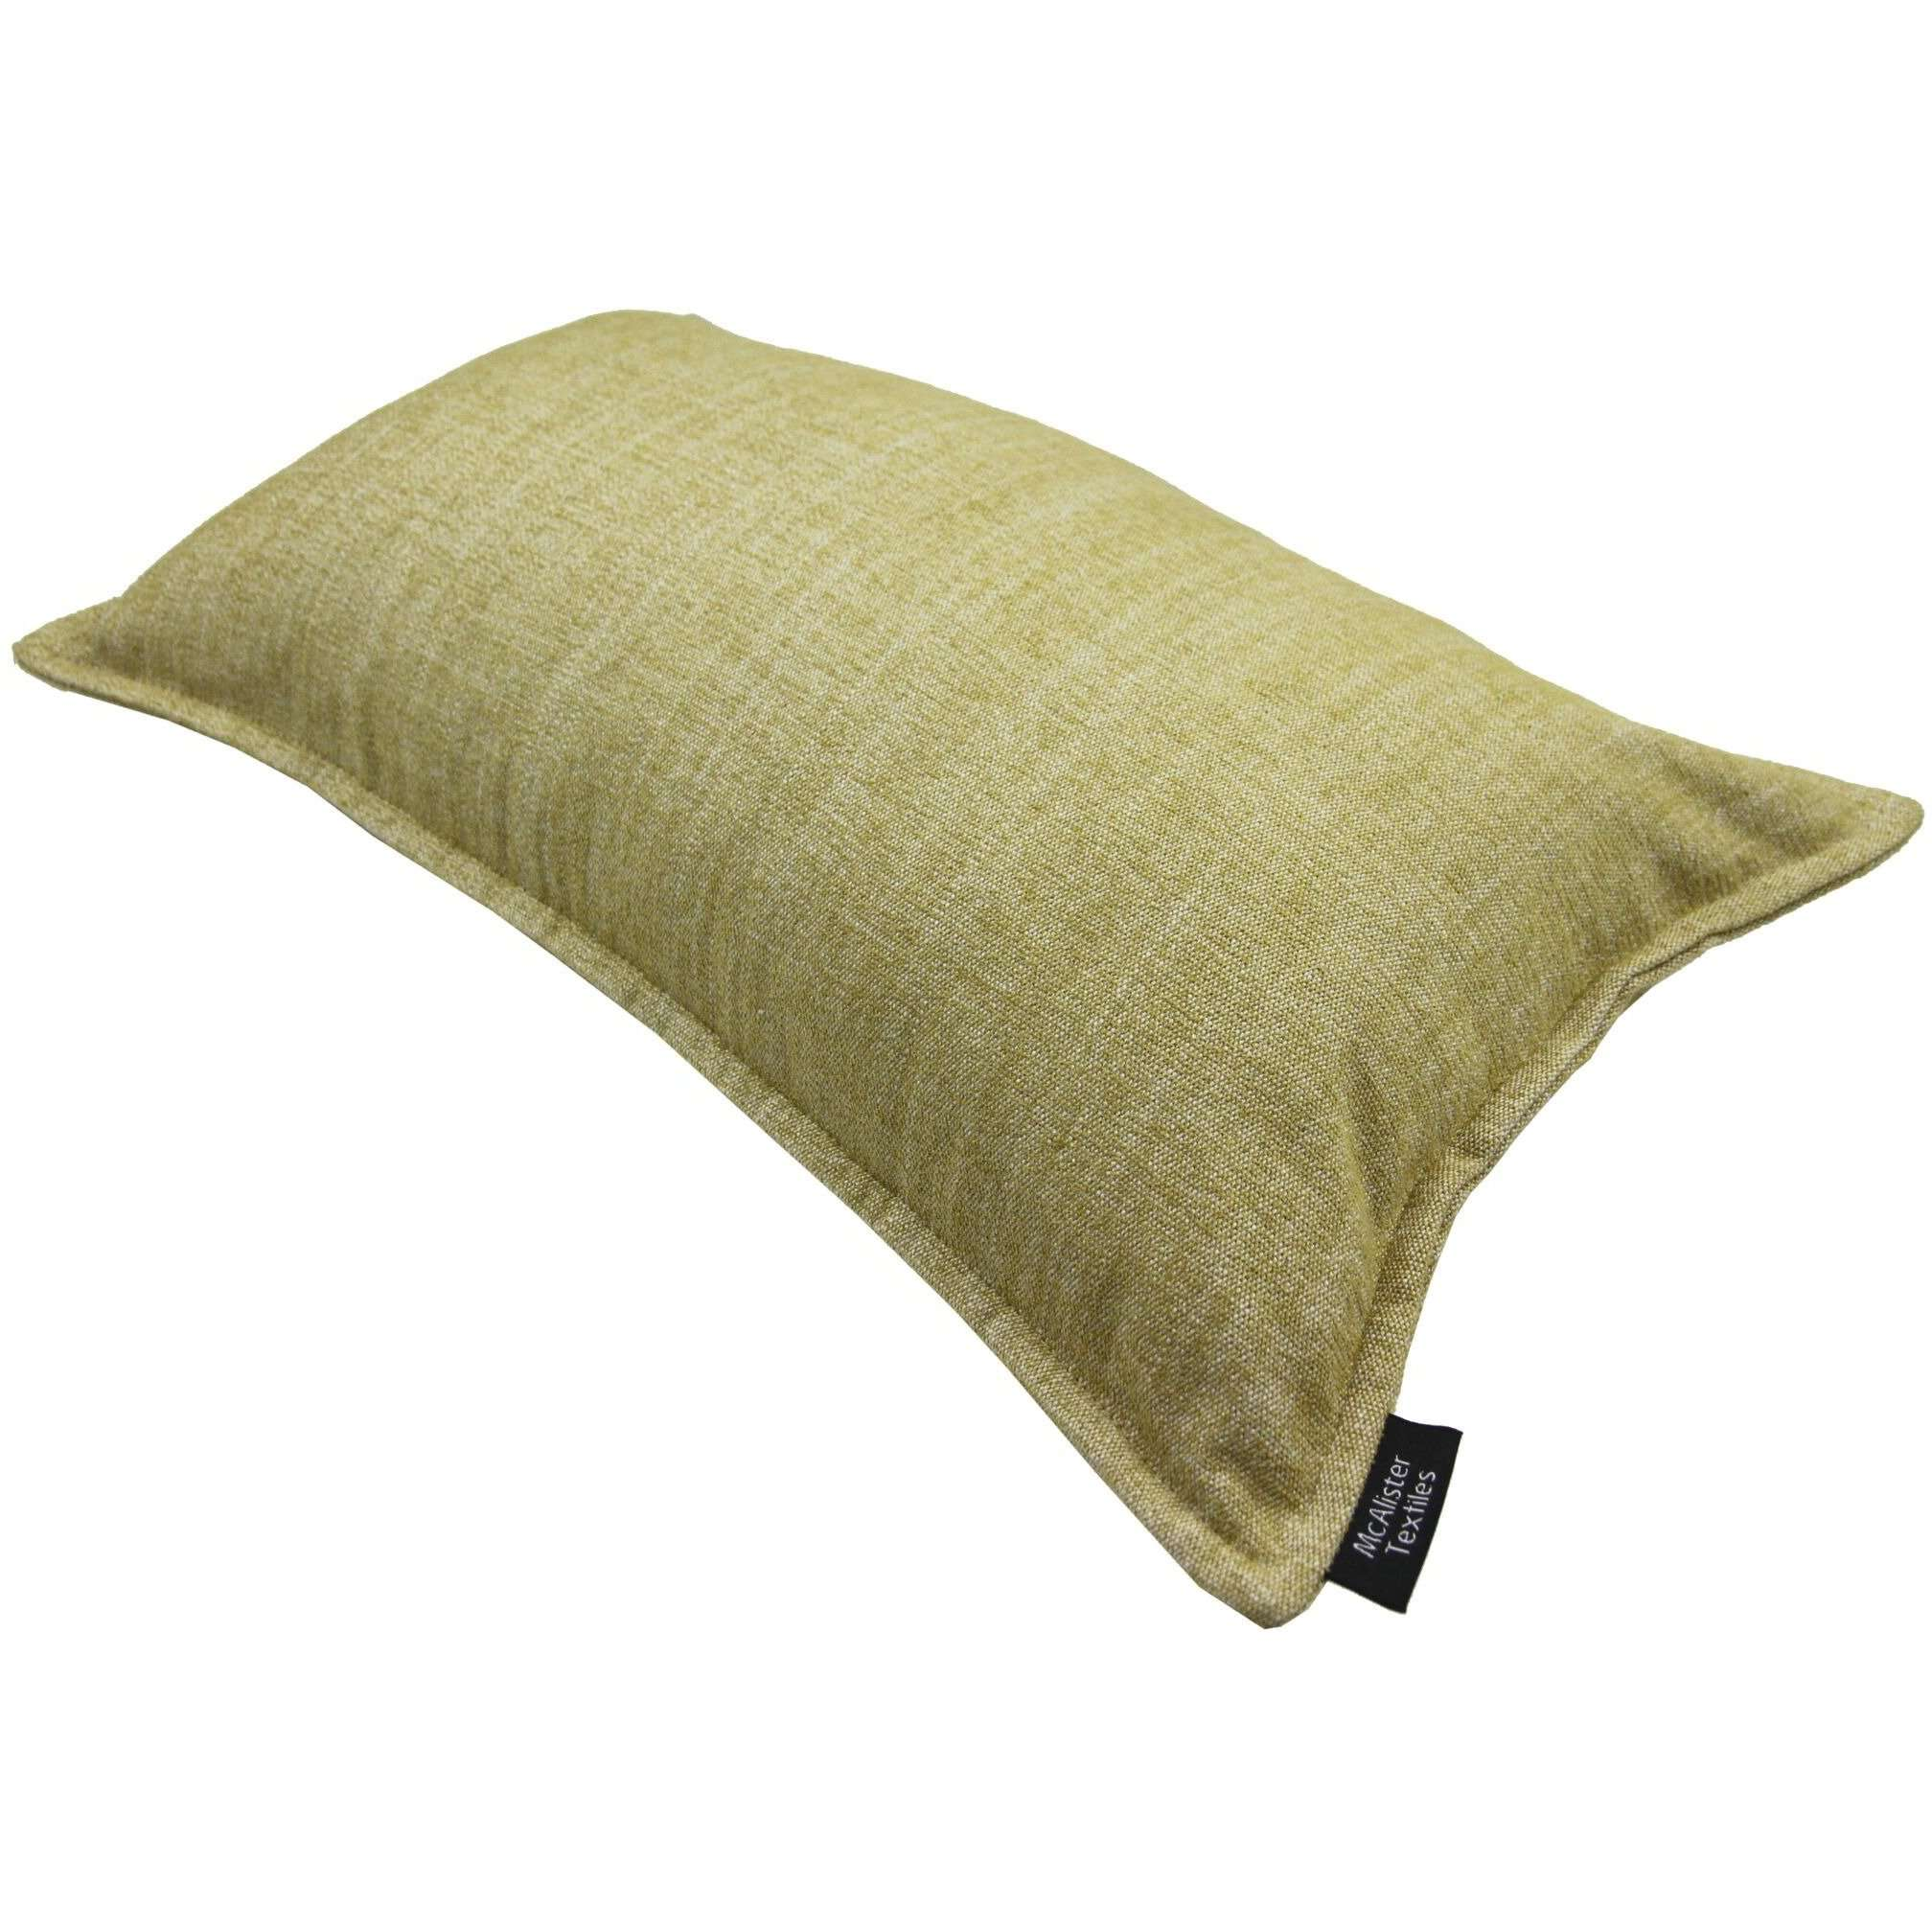 McAlister Textiles Rhumba Ochre Yellow Cushion Cushions and Covers